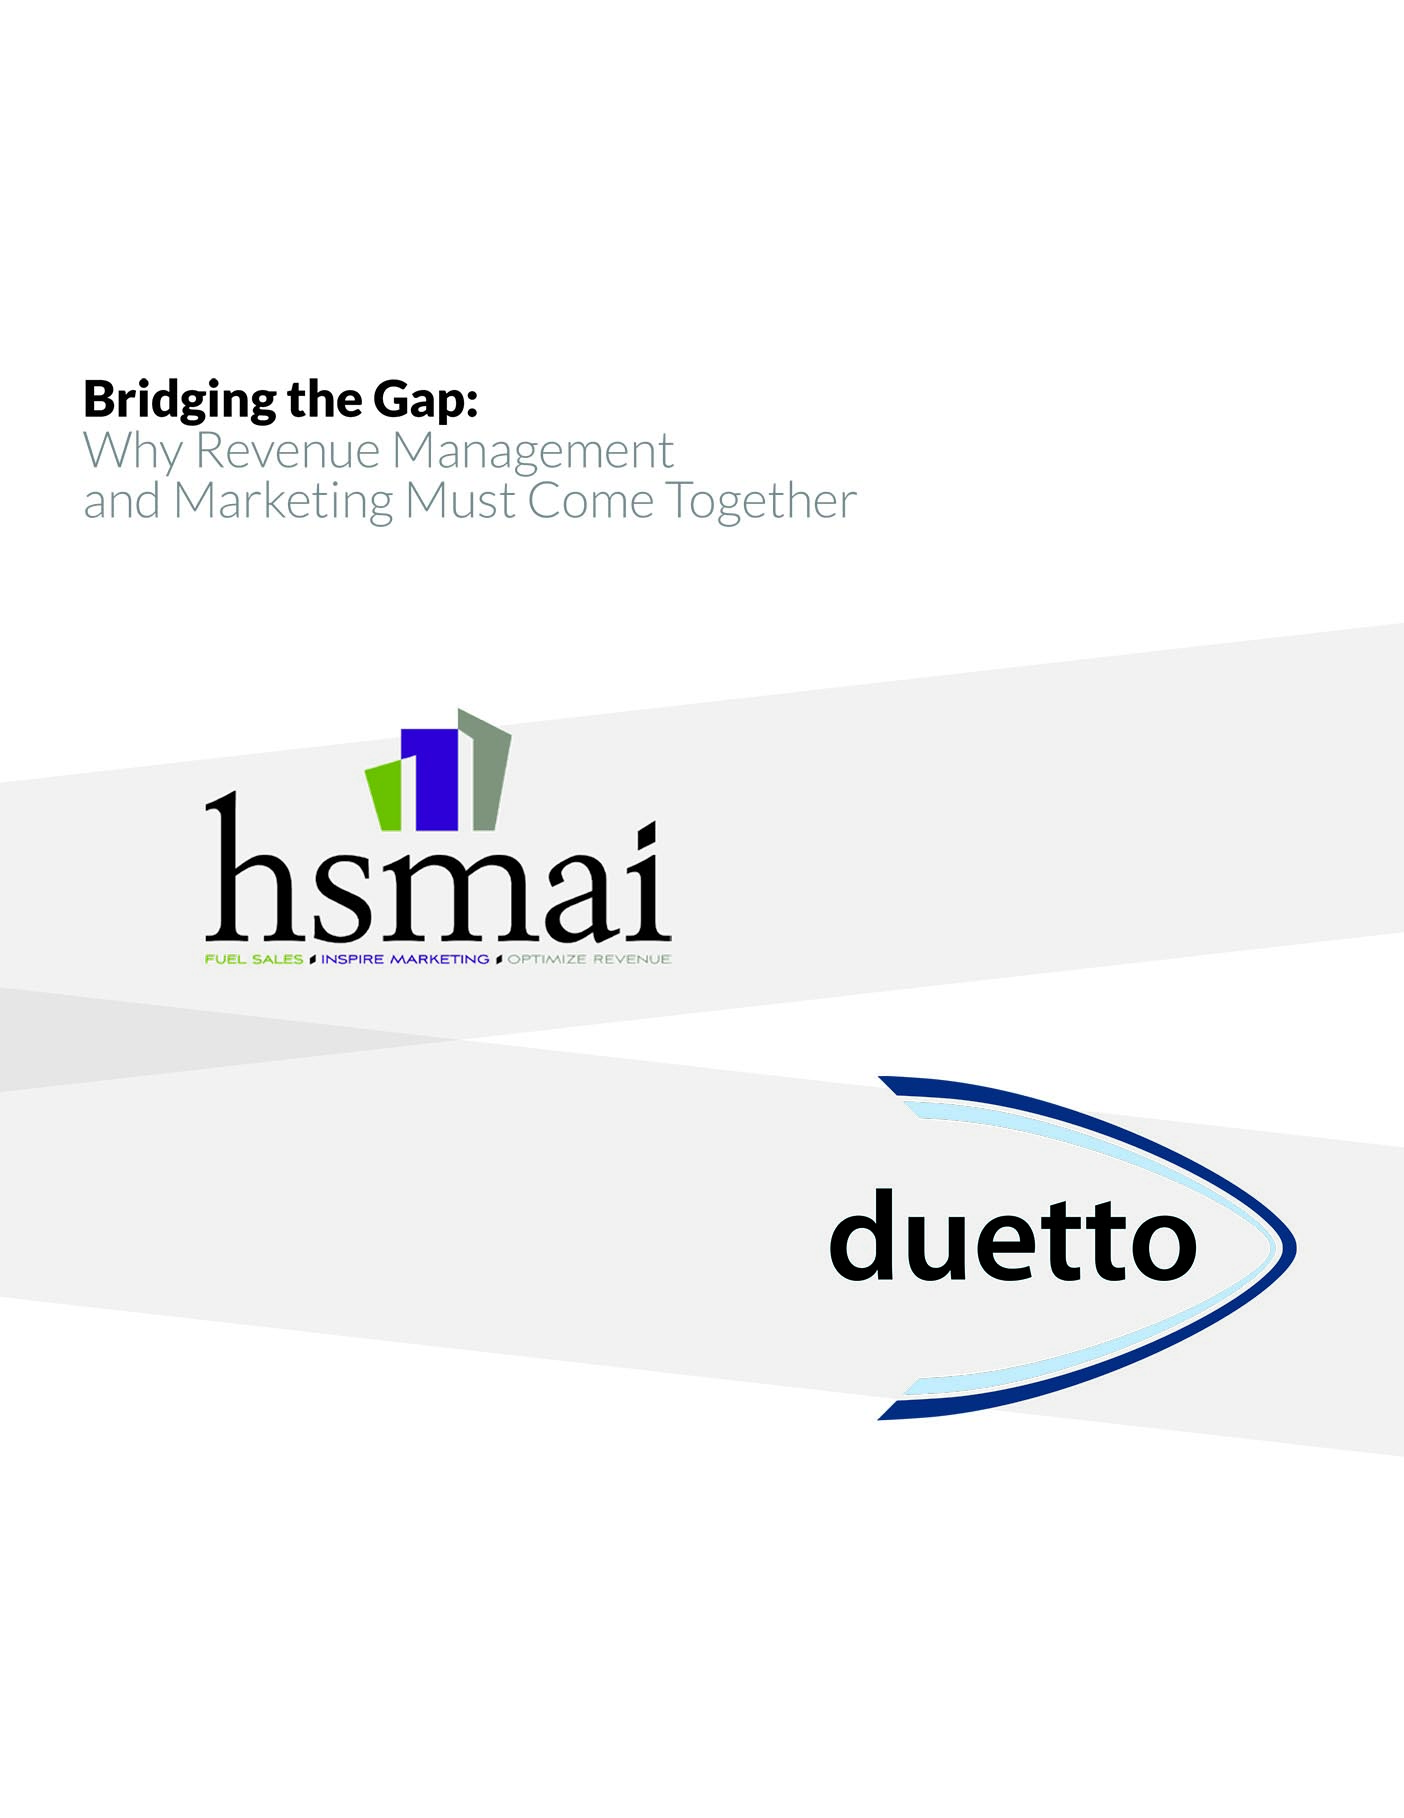 1 HSMAI - Bridging-the-Gap-Revenue-Management-Marketing-1.jpg